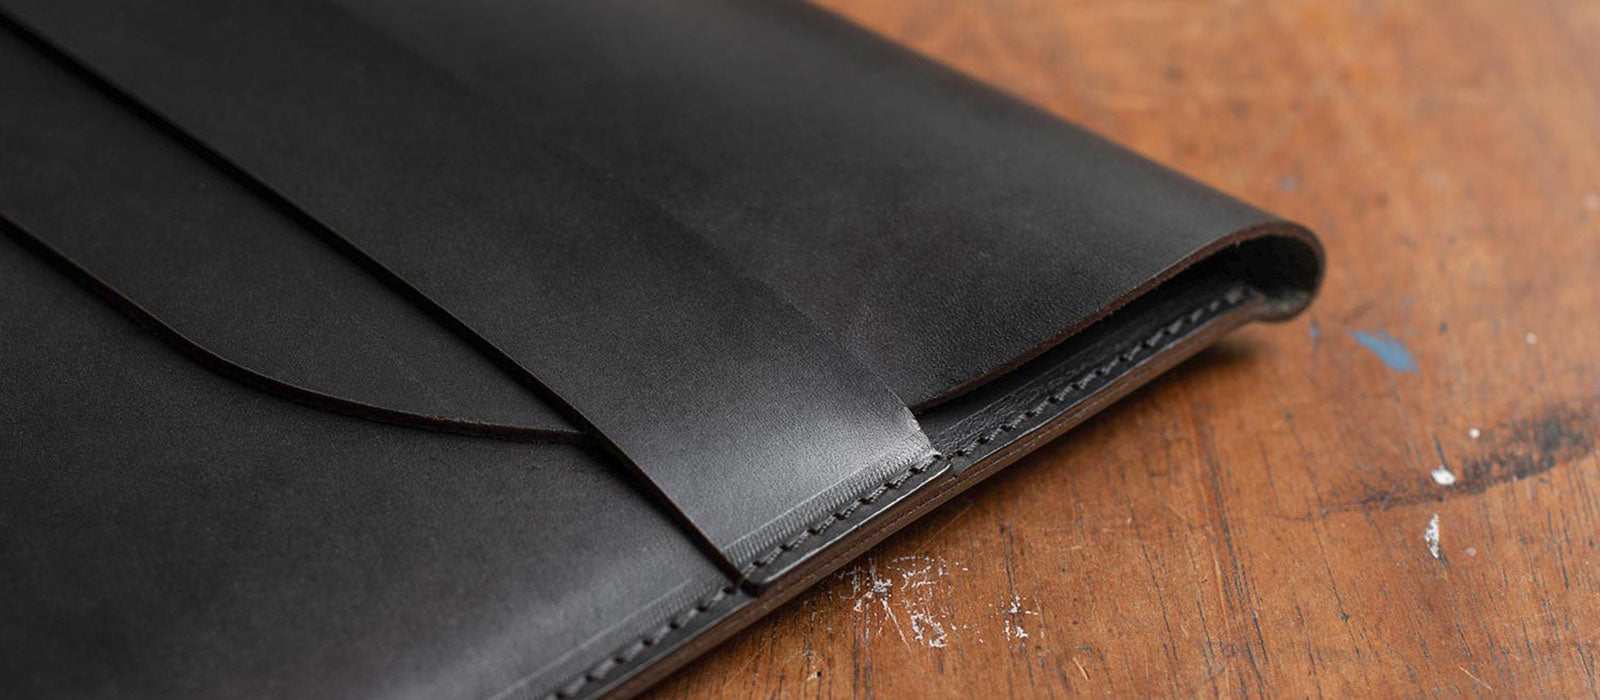 Personalised leather document / macbook folio